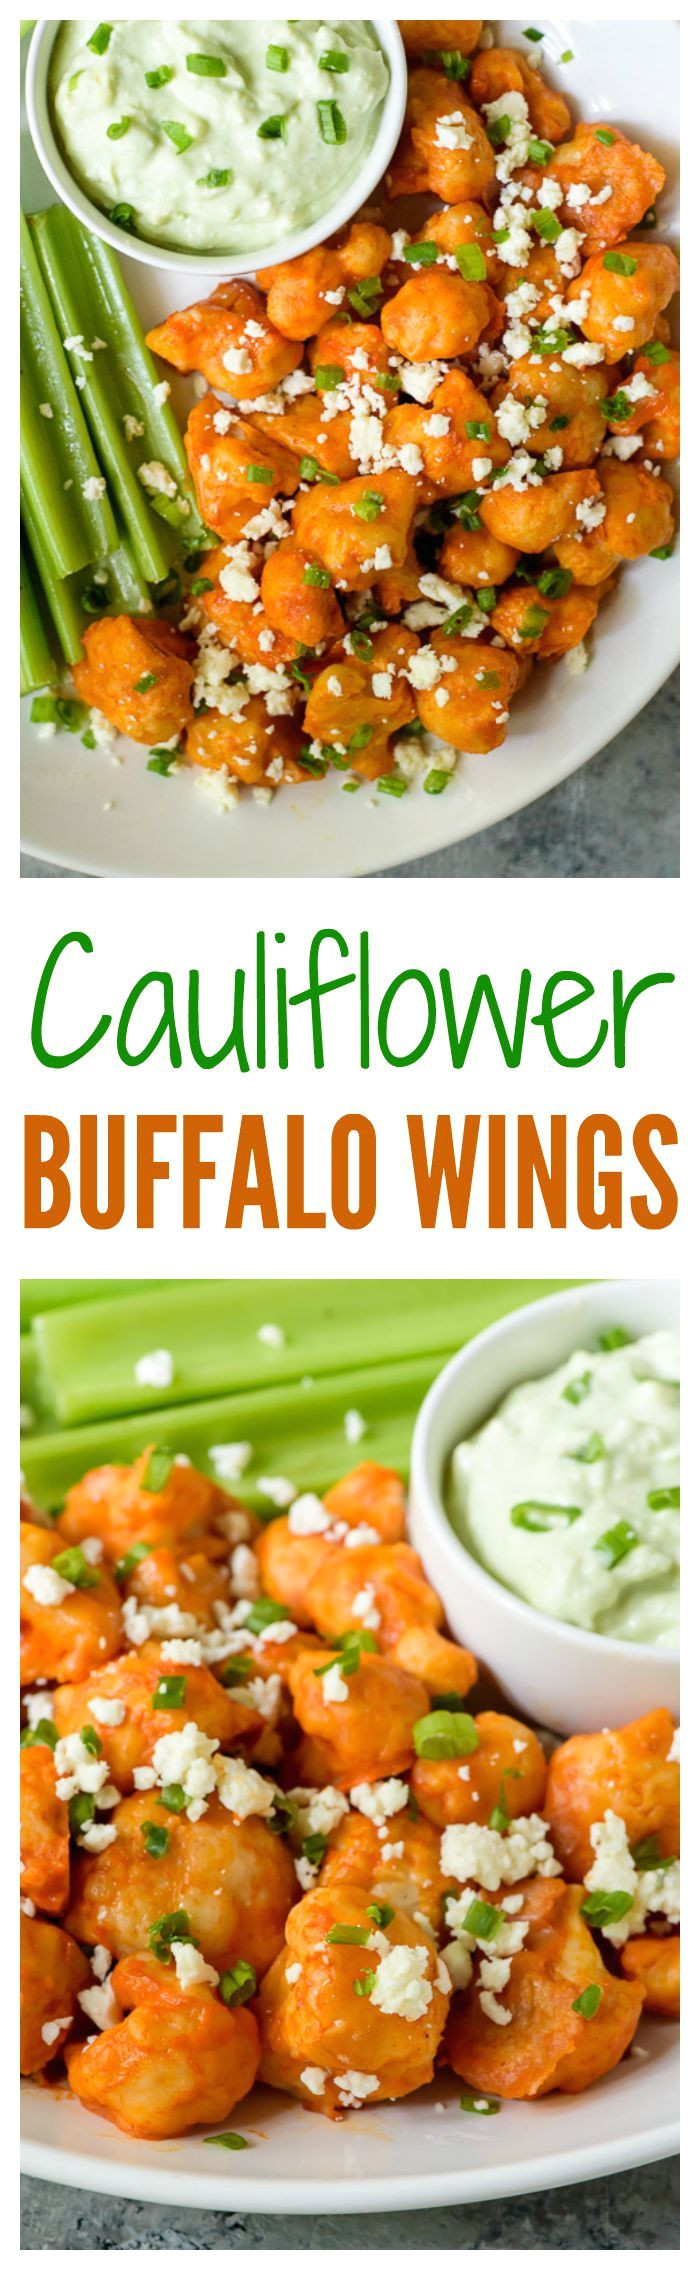 light and crispy baked cauliflower bites with spicy buffalo sauce the perfect football party appetizer and tailgate food for game day